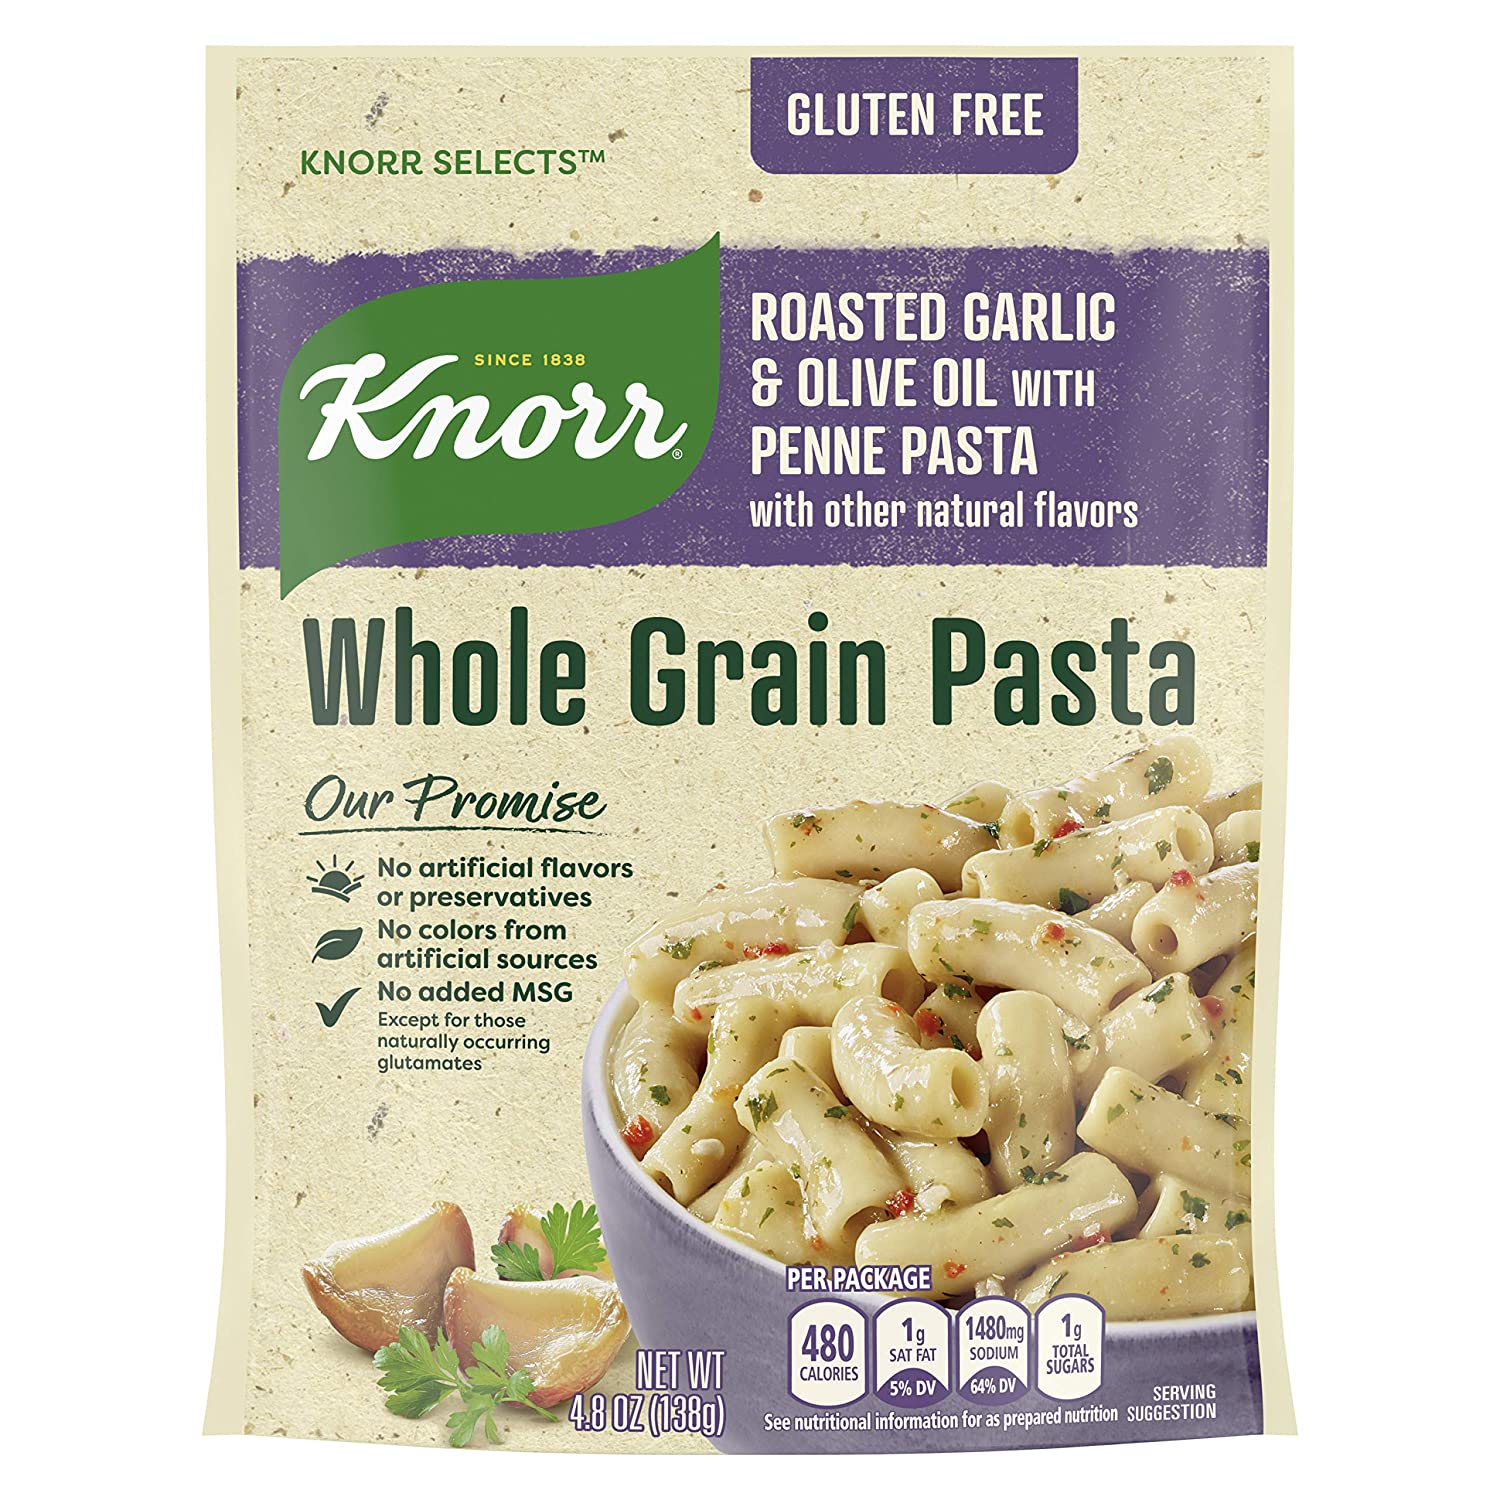 Knorr Selects Whole Grain Pasta For a Delicious Pasta Side Dish Roasted Garlic & Olive Oil Gluten Free 4.8 oz